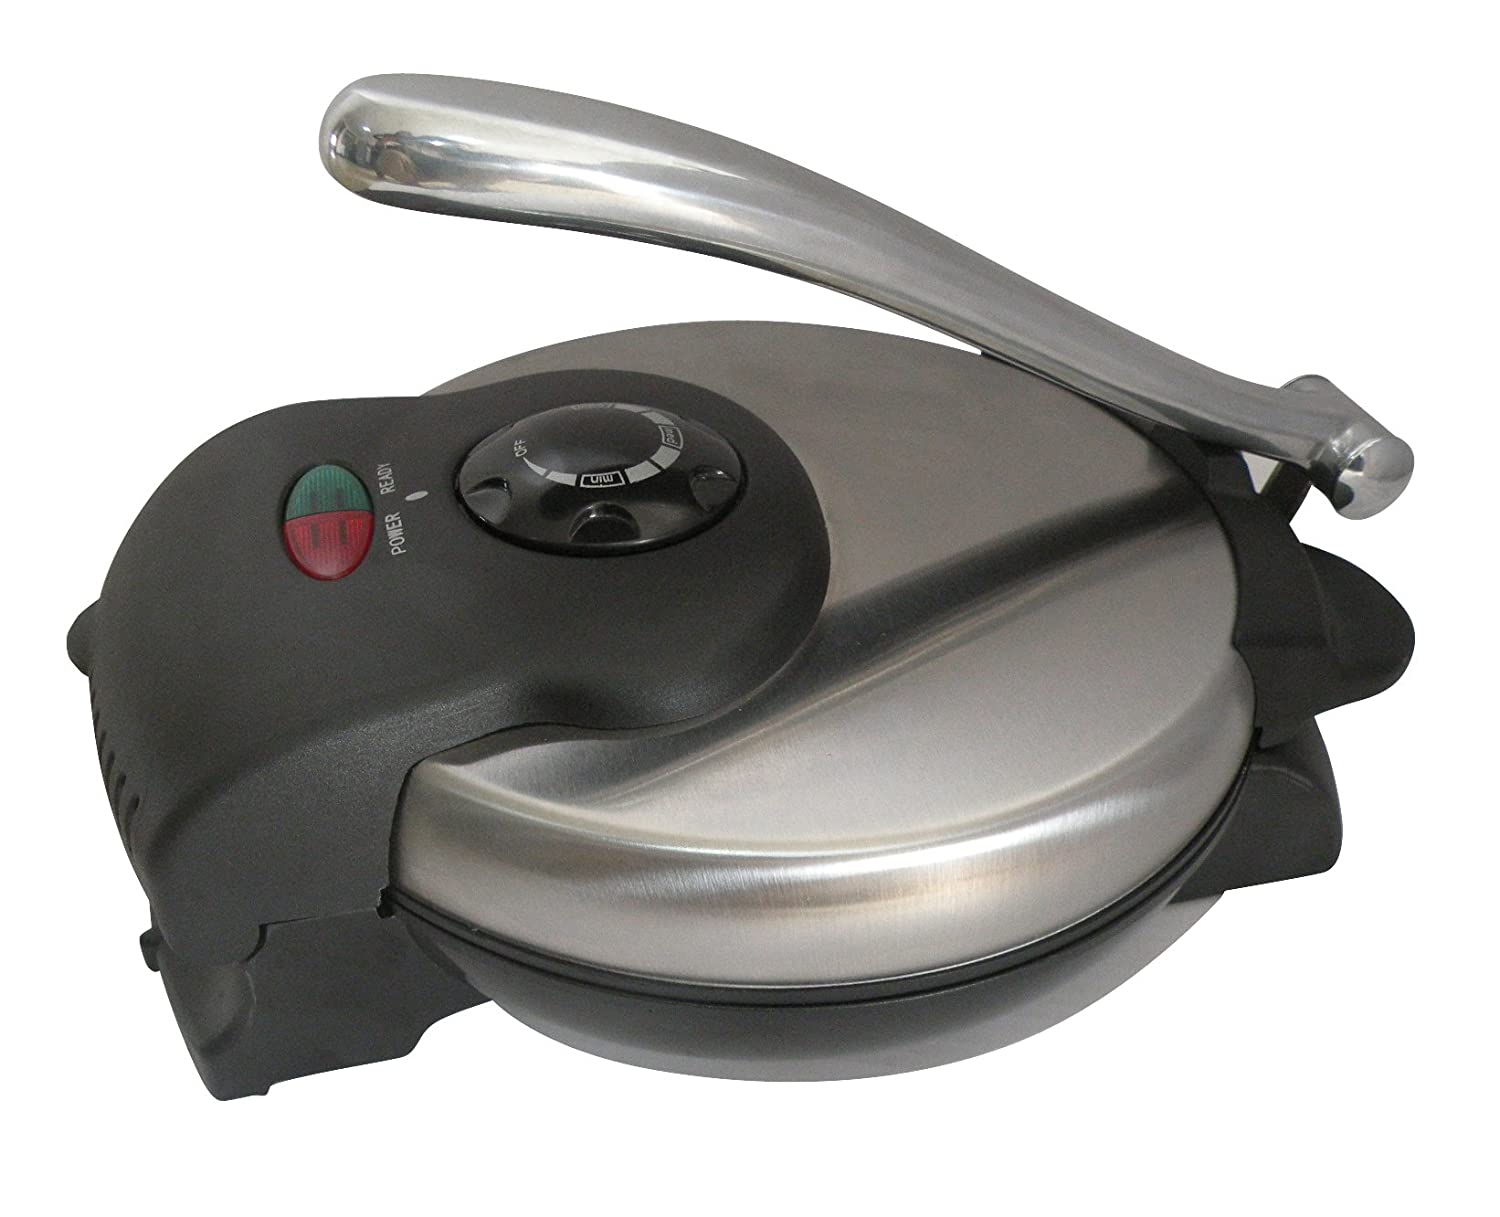 Brentwood TS126 Non-Stick in Stainless Steel Tortilla Maker Brentwood Appliances